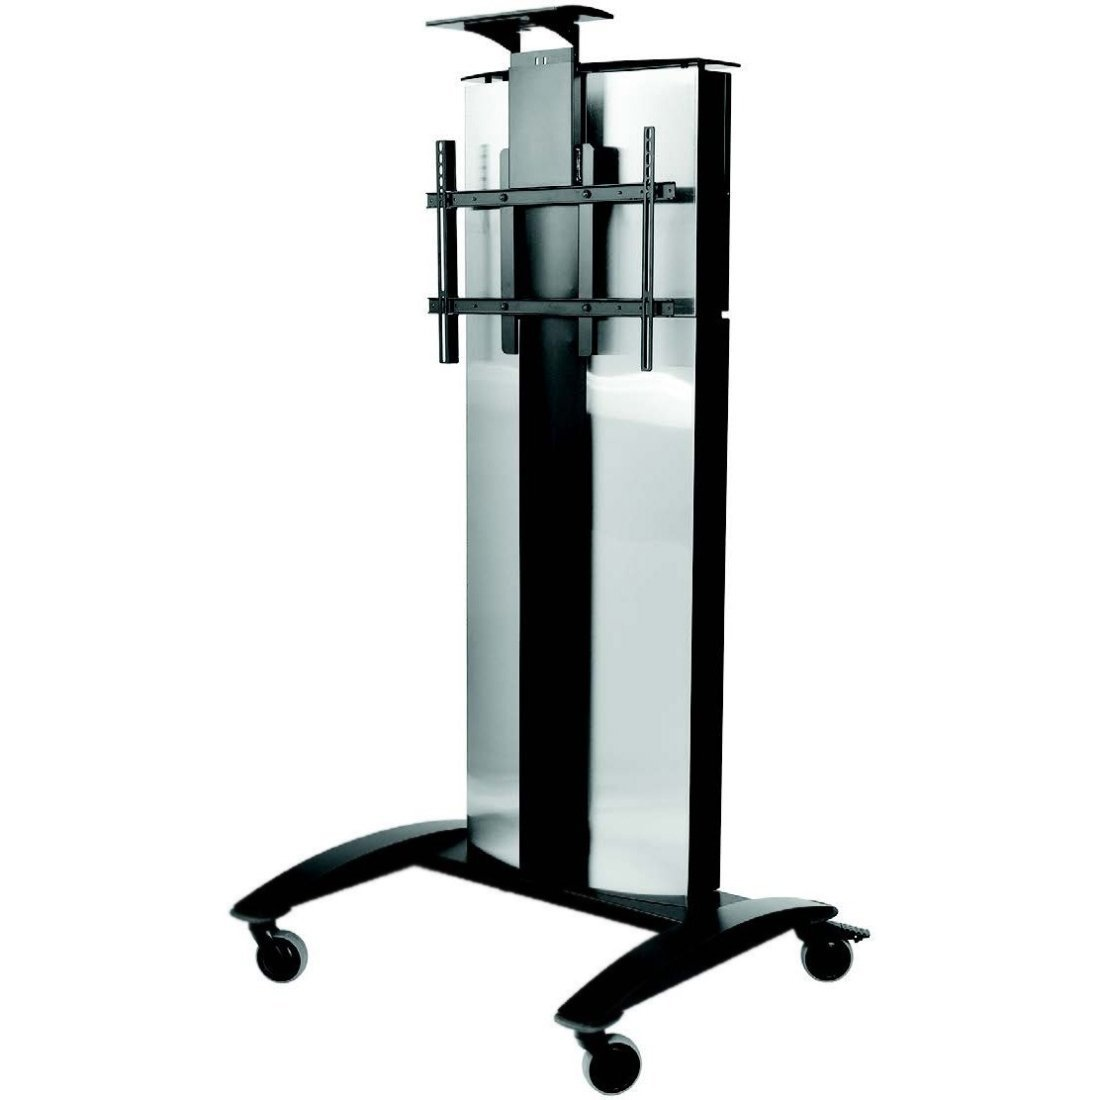 FLAT PANEL VIDEO CONFERENCE CART FOR ONE 32-75IN DISPLAY